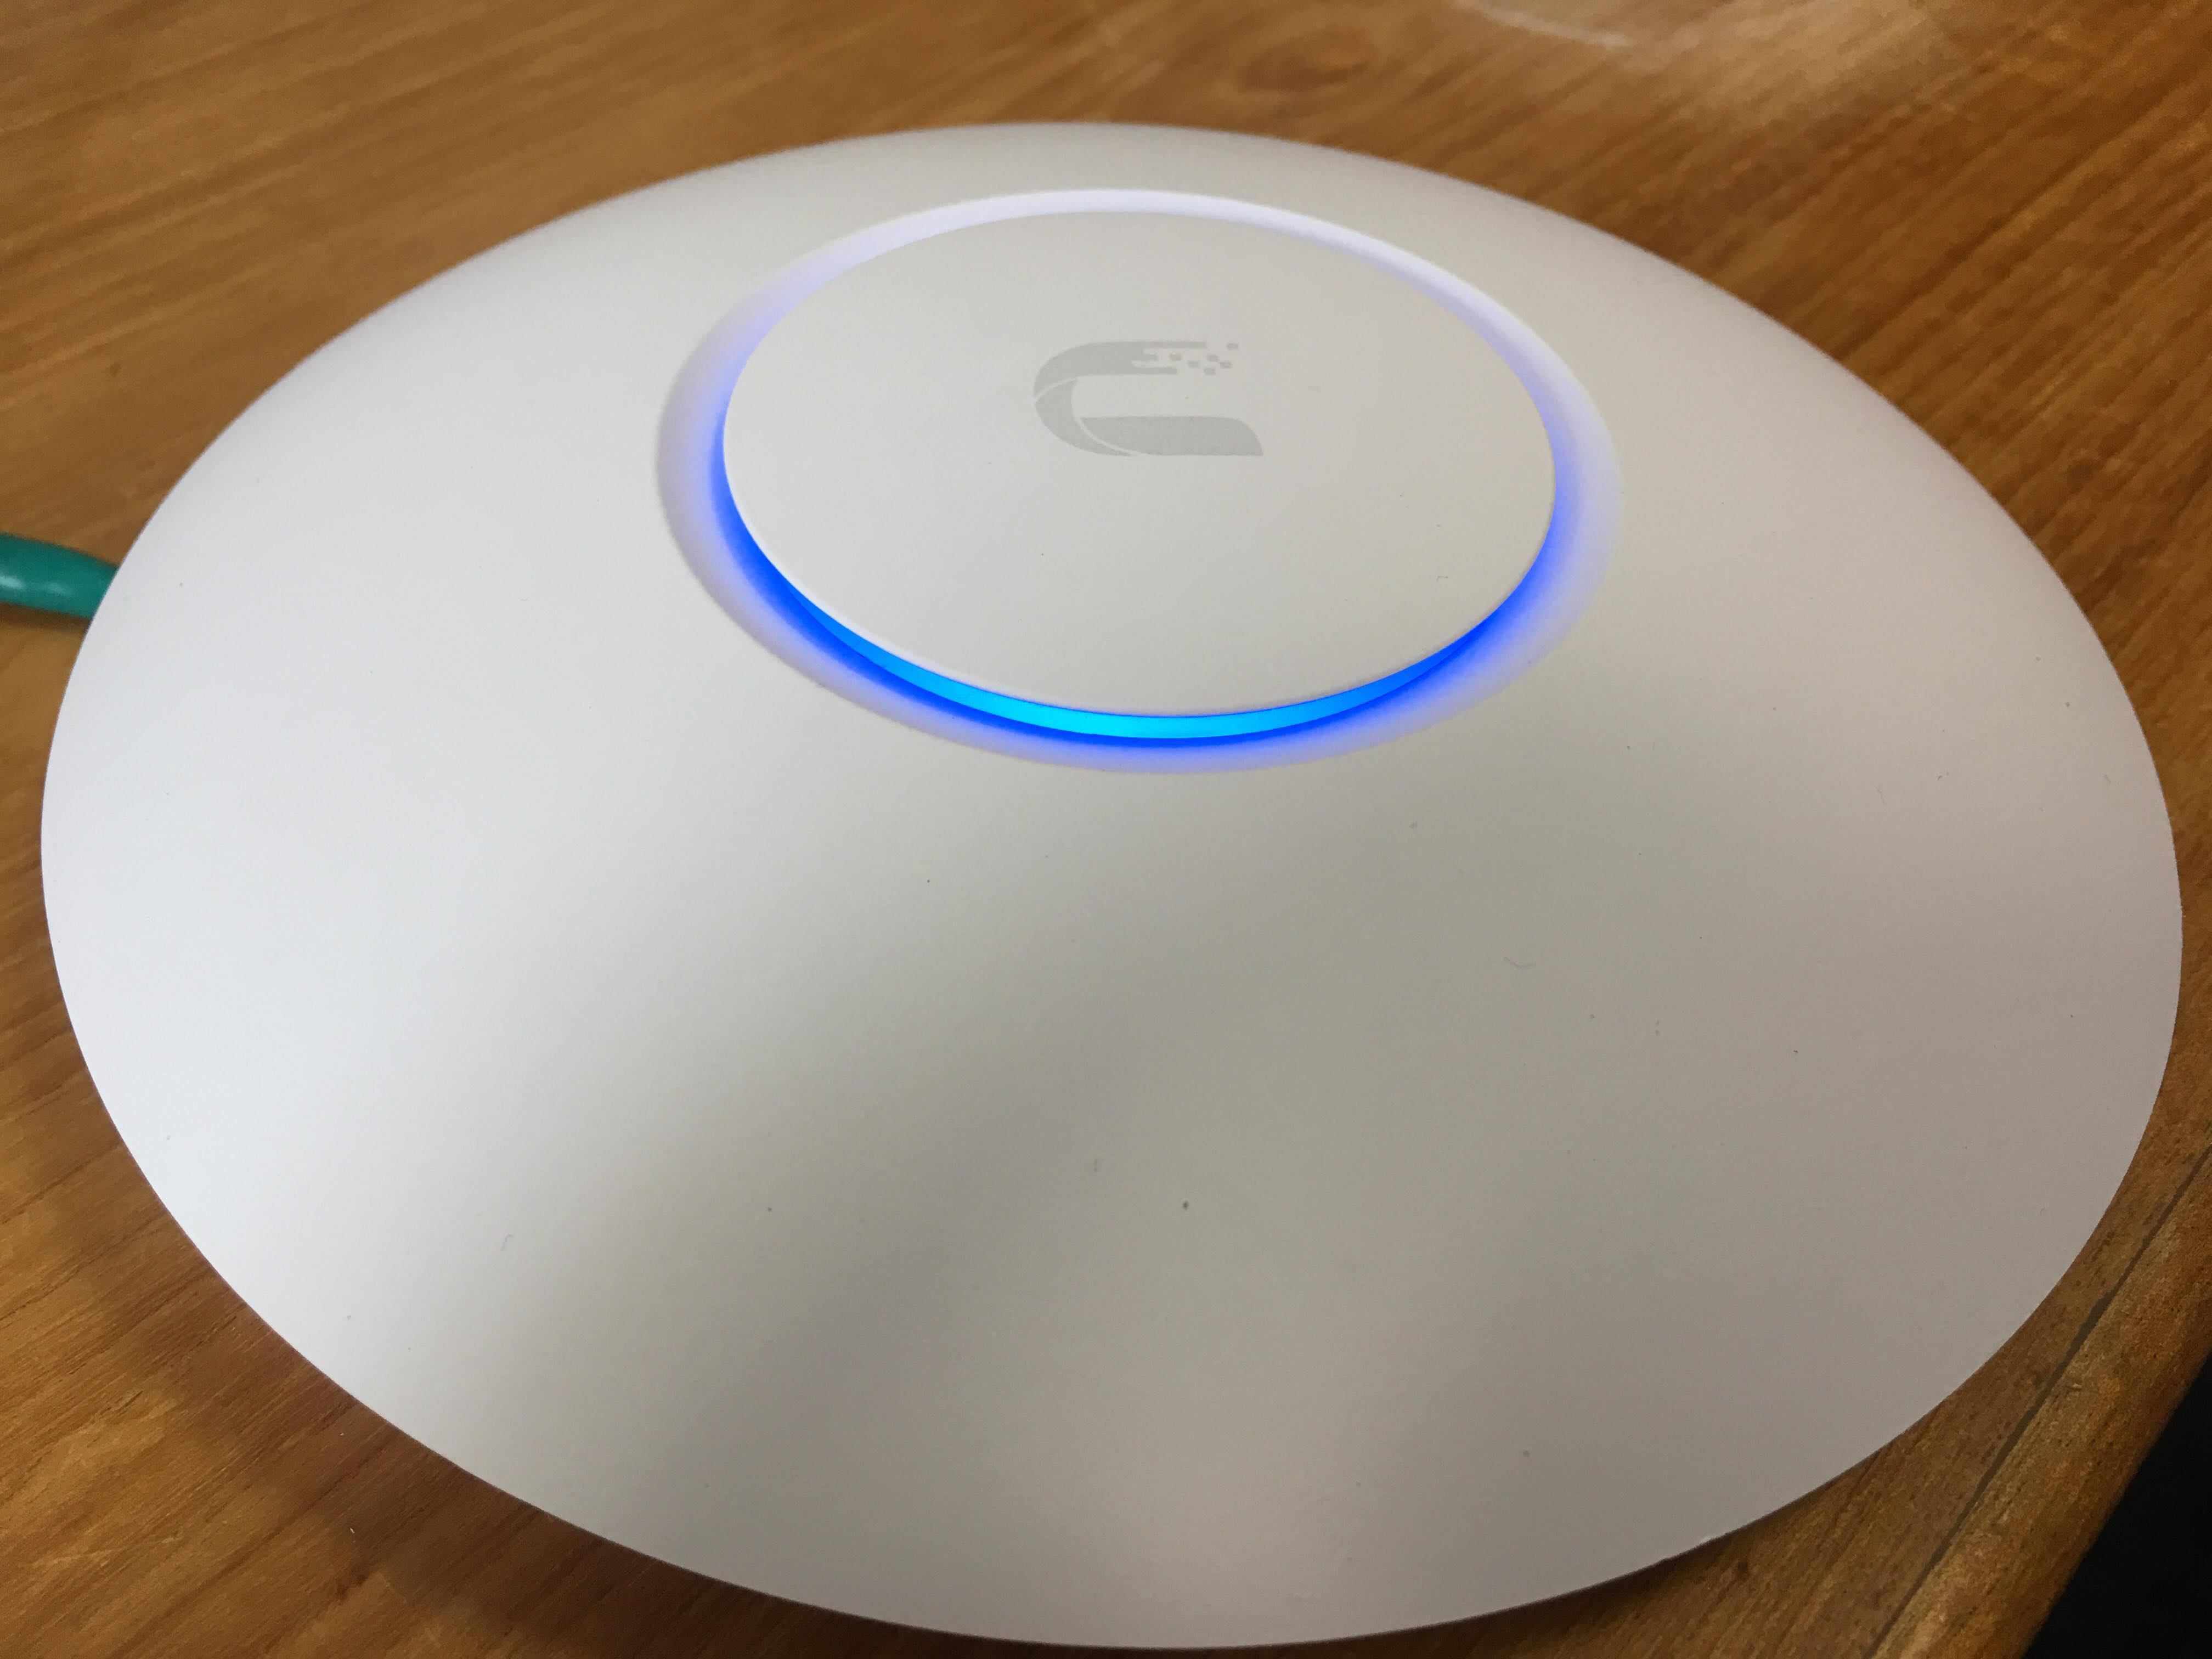 asus wifi_wifi system_networking_wire wi